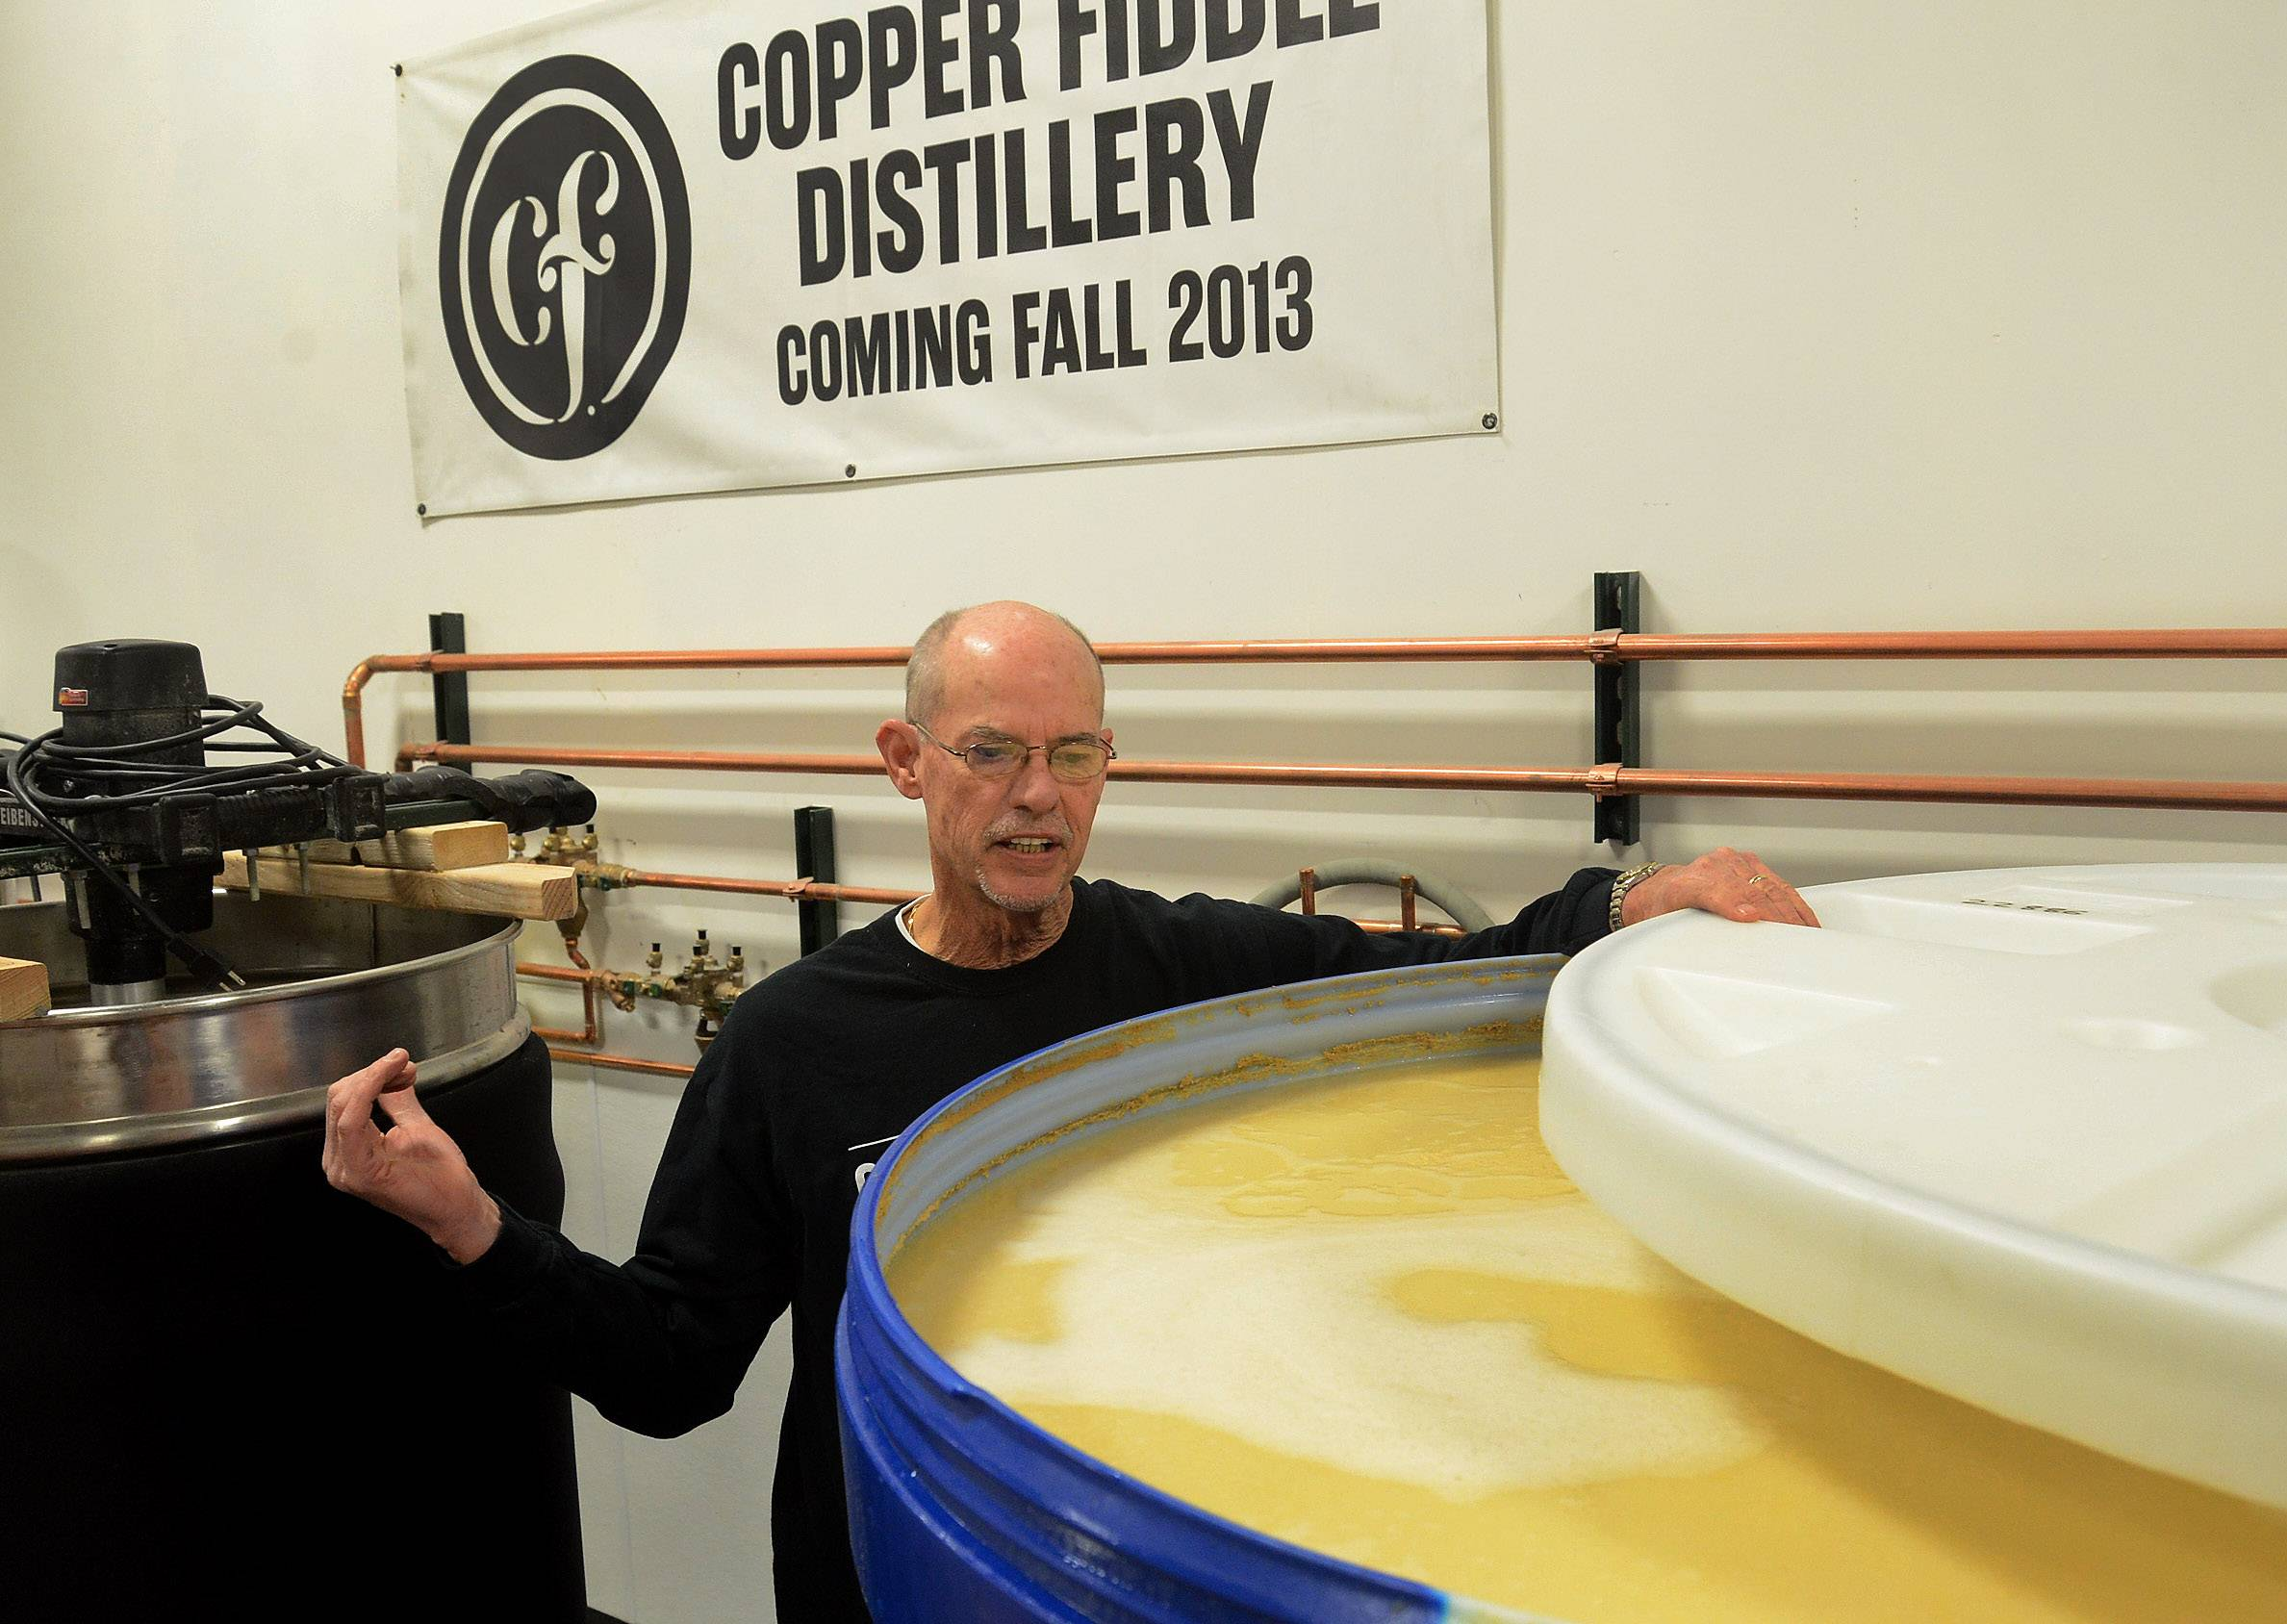 Fred Robinson, who with Jose Hernandez owns Copper Fiddle Distillery in Lake Zurich, explains the production process.